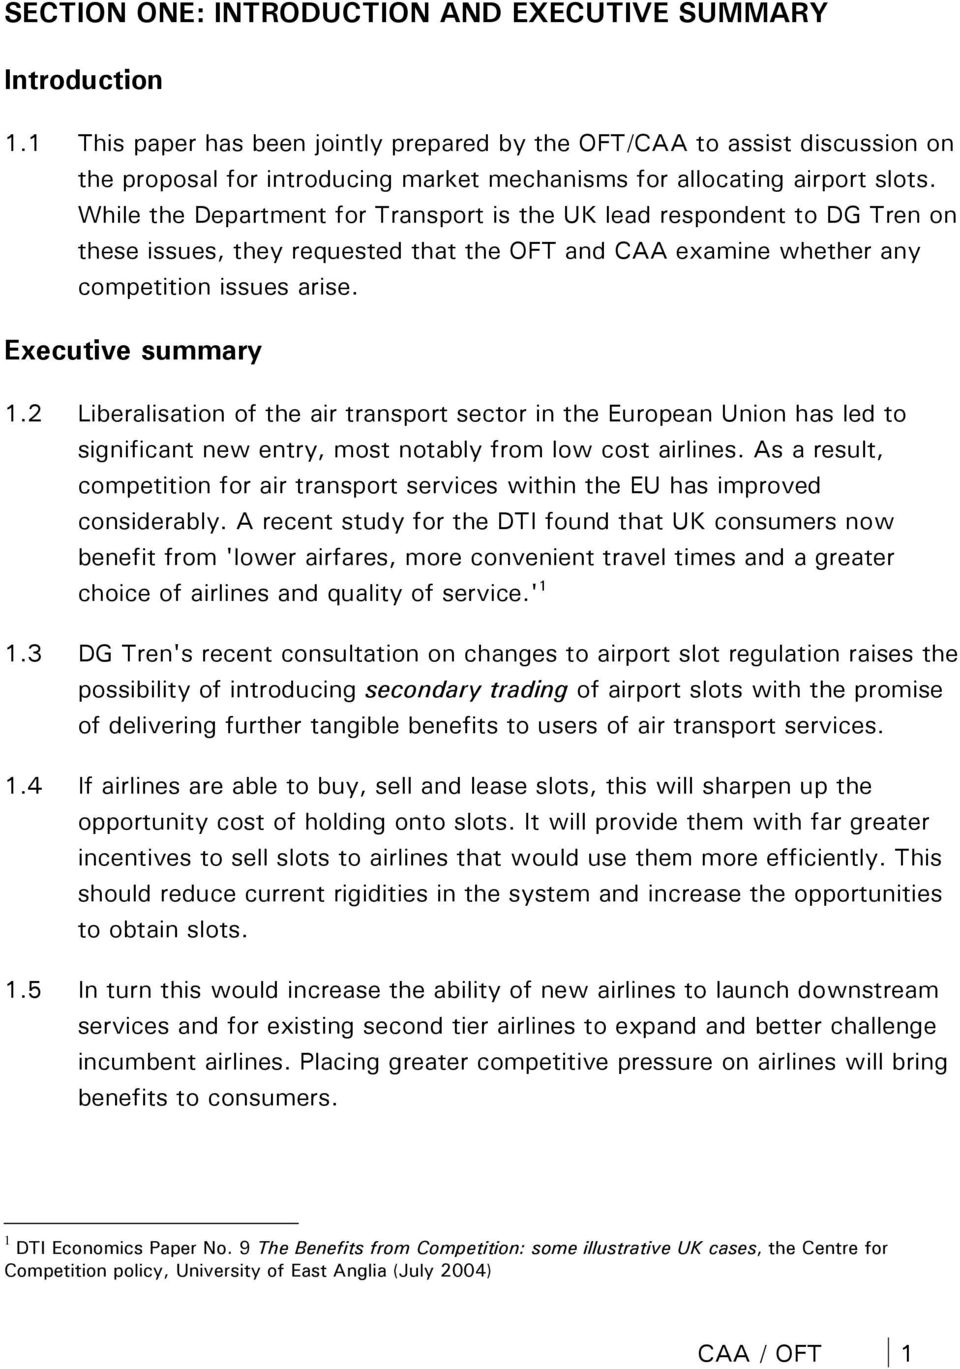 While the Department for Transport is the UK lead respondent to DG Tren on these issues, they requested that the OFT and CAA examine whether any competition issues arise. Executive summary 1.